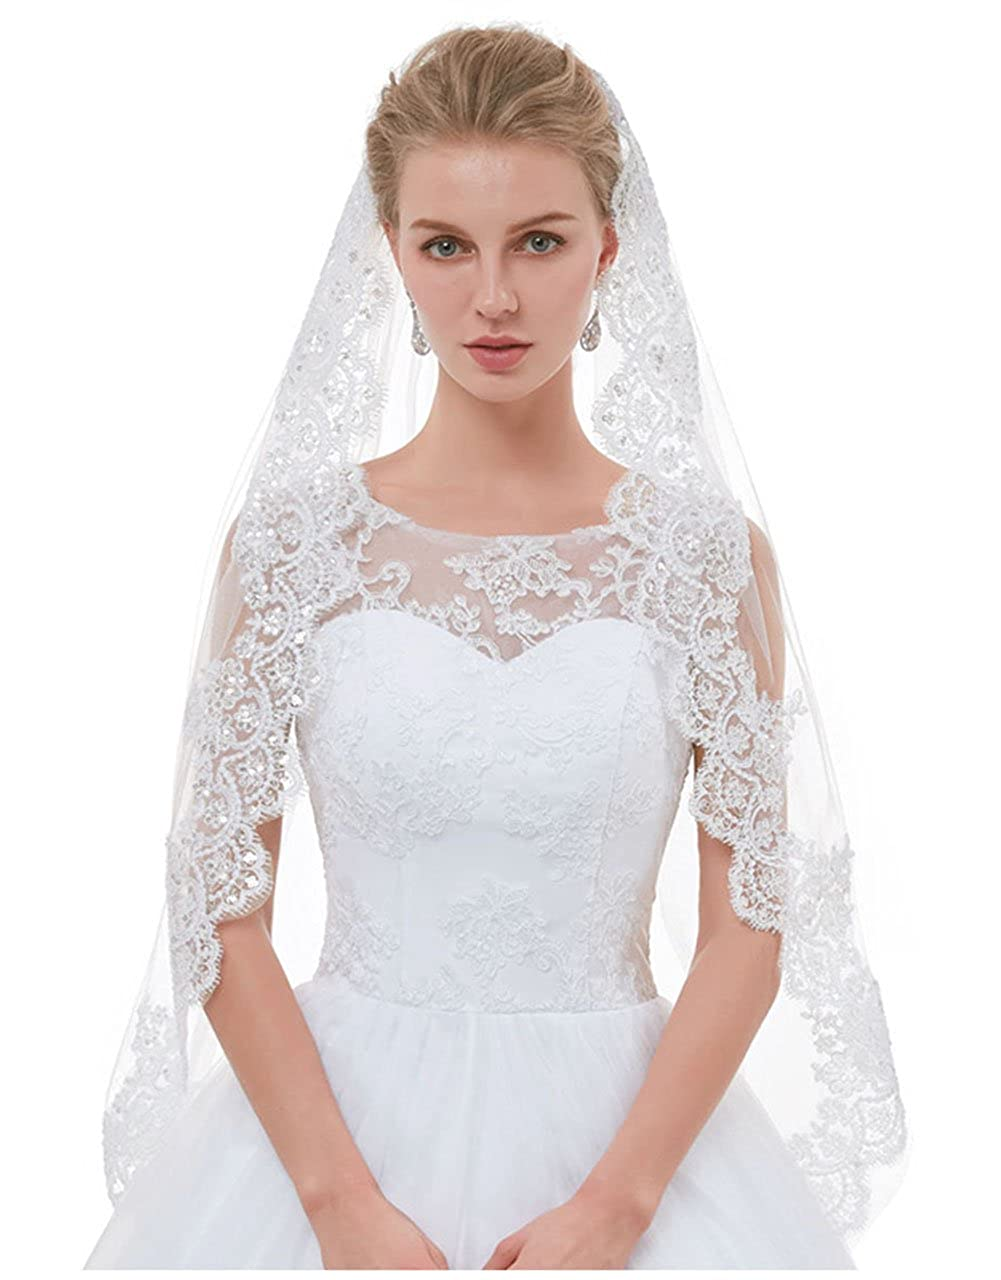 Ivory AIBIYI 1 Tier   2 Tier Lace Fingertip Veils for Brides with Comb ABYV10